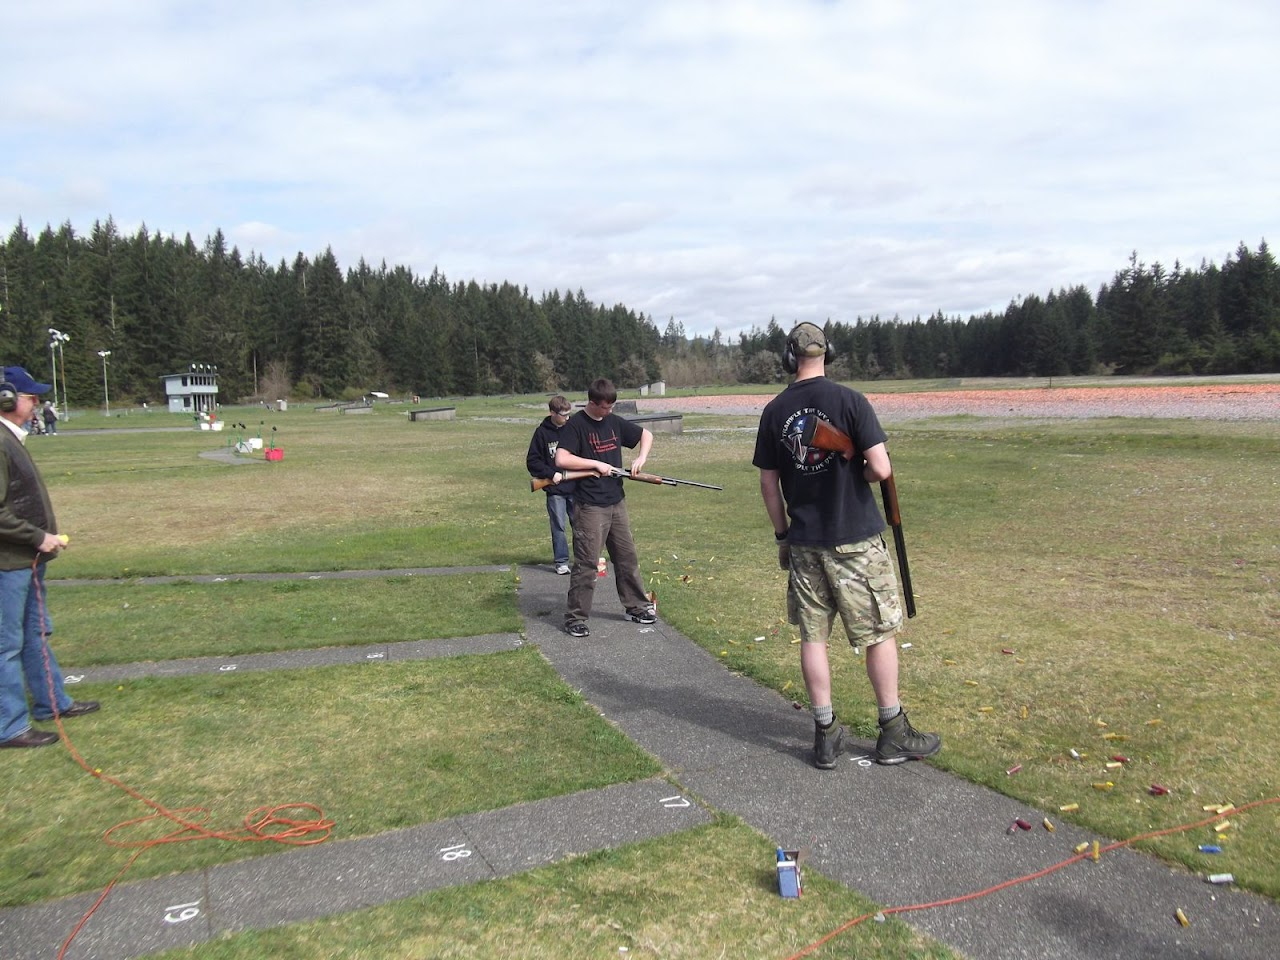 2012 Shooting Sports Weekend - DSCF1456.JPG